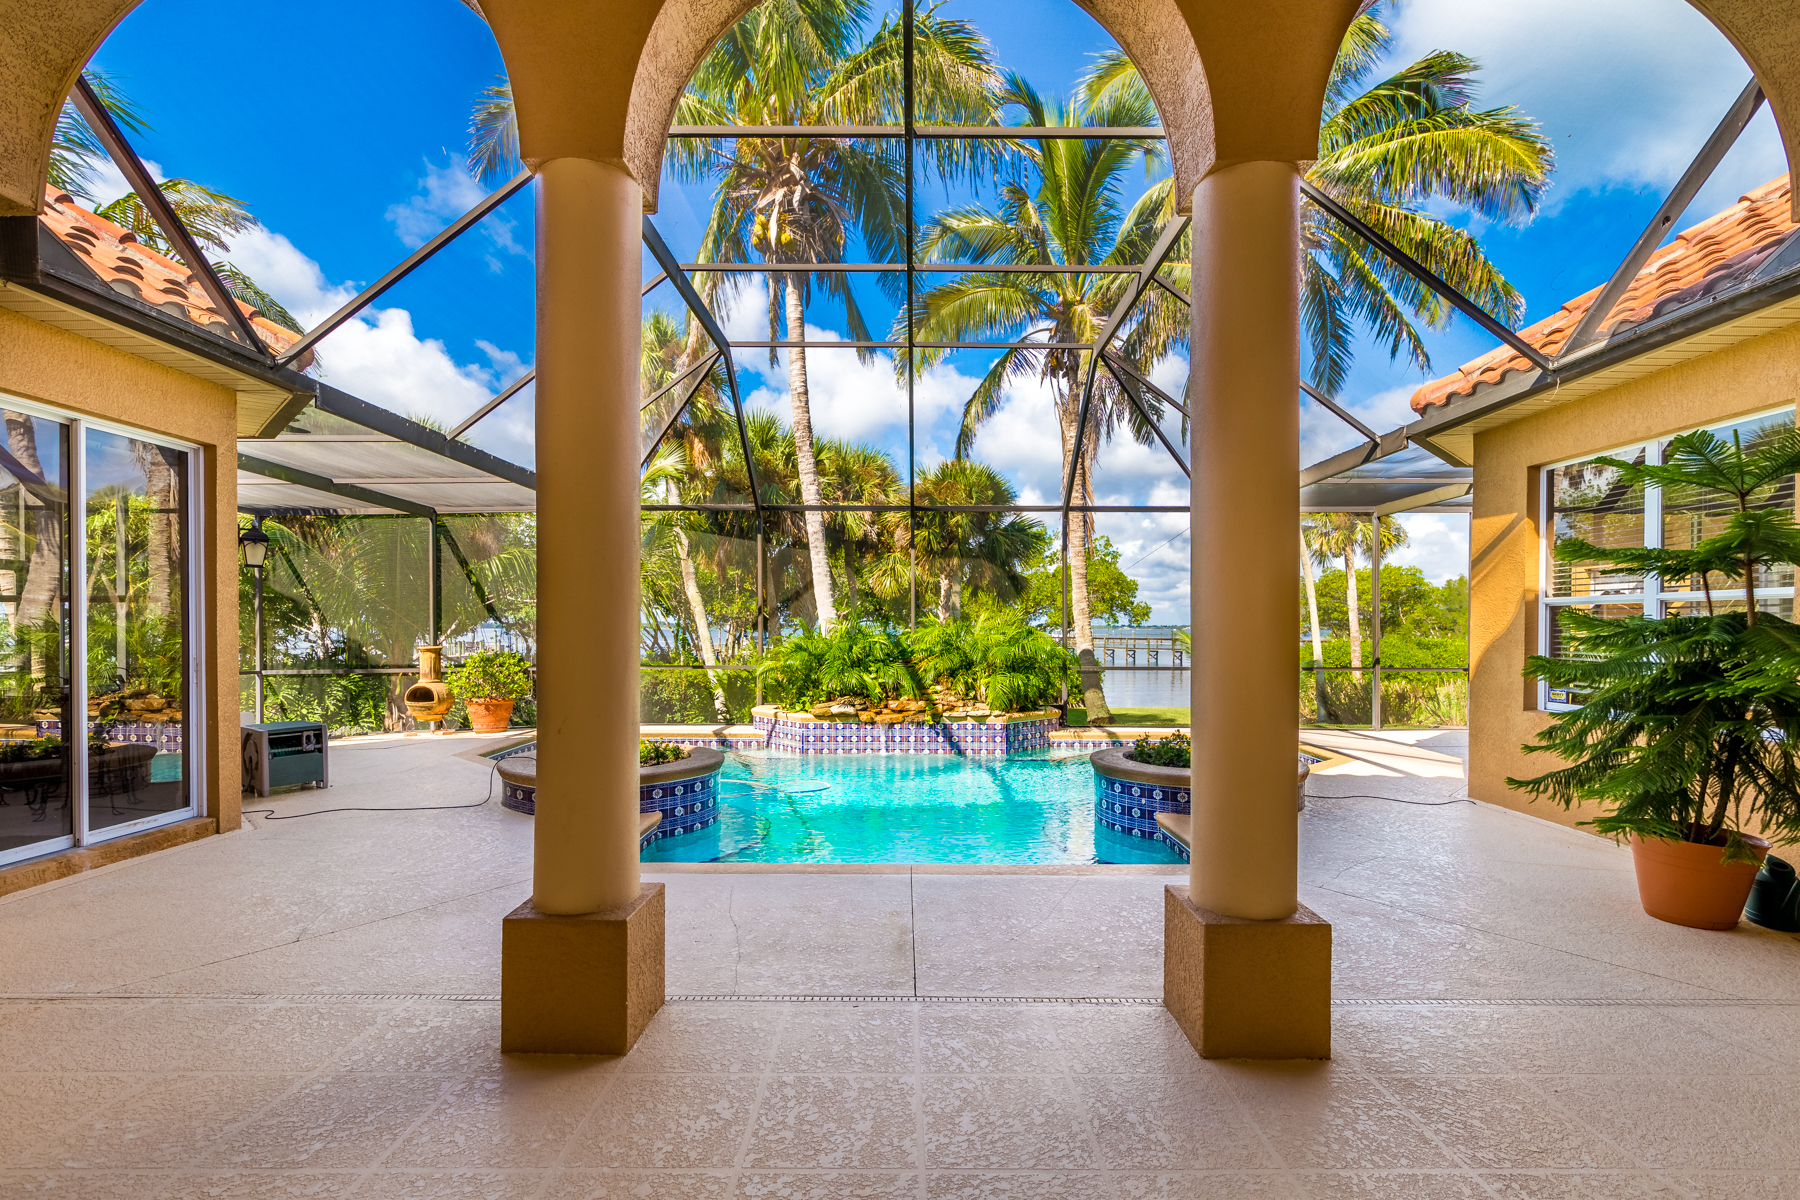 Additional photo for property listing at Beautiful Riverfront Home in Hidden Cove, Melbourne Beach 153 Hidden Cove Drive Melbourne Beach, Florida 32951 United States